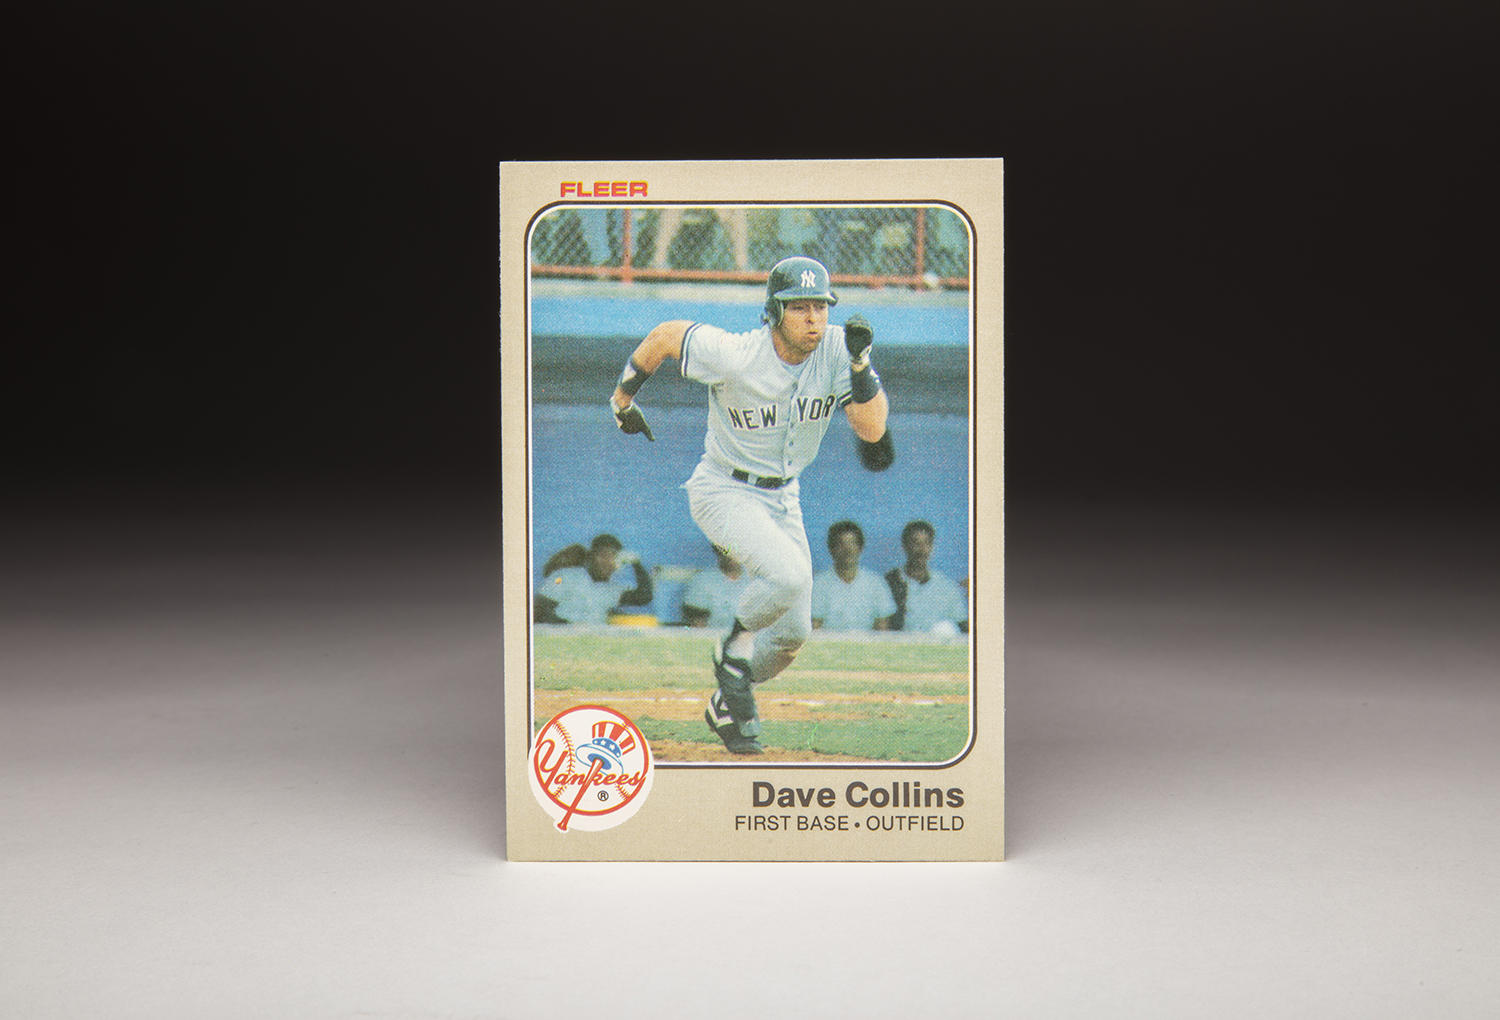 Shot during a Spring Training game, Dave Collins' 1983 Fleer card provides a glimpse of his consistent hustle. (Milo Stewart Jr. / National Baseball Hall of Fame)